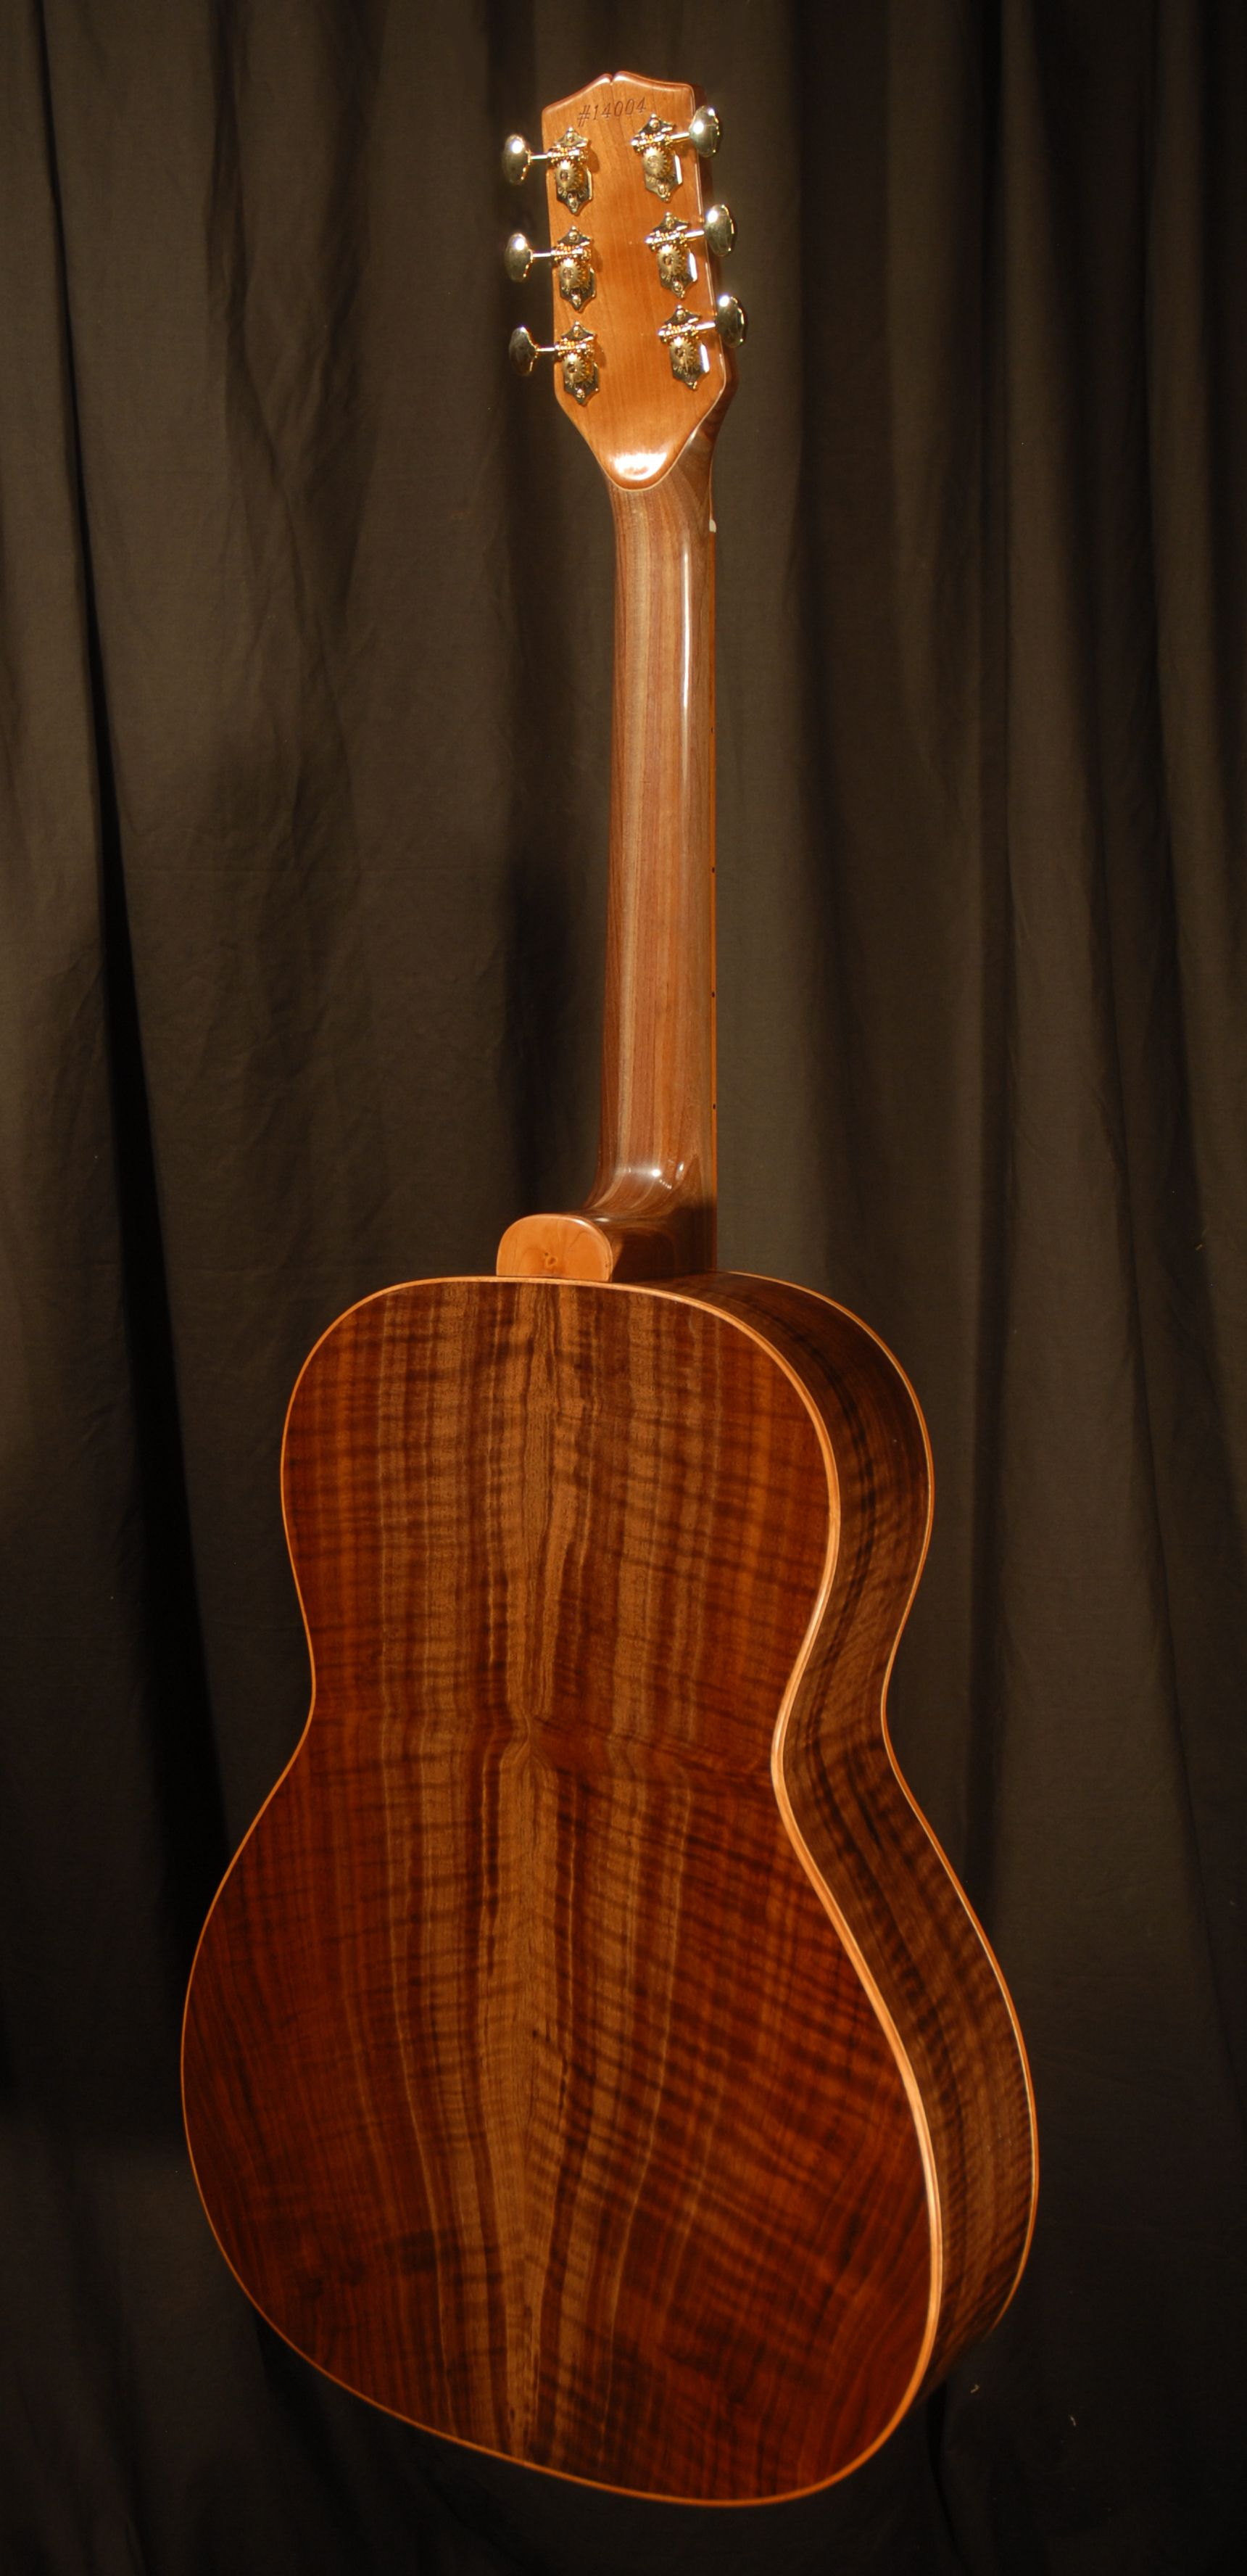 front view of the body of michael mccarten's 000-12 flat top guitar model